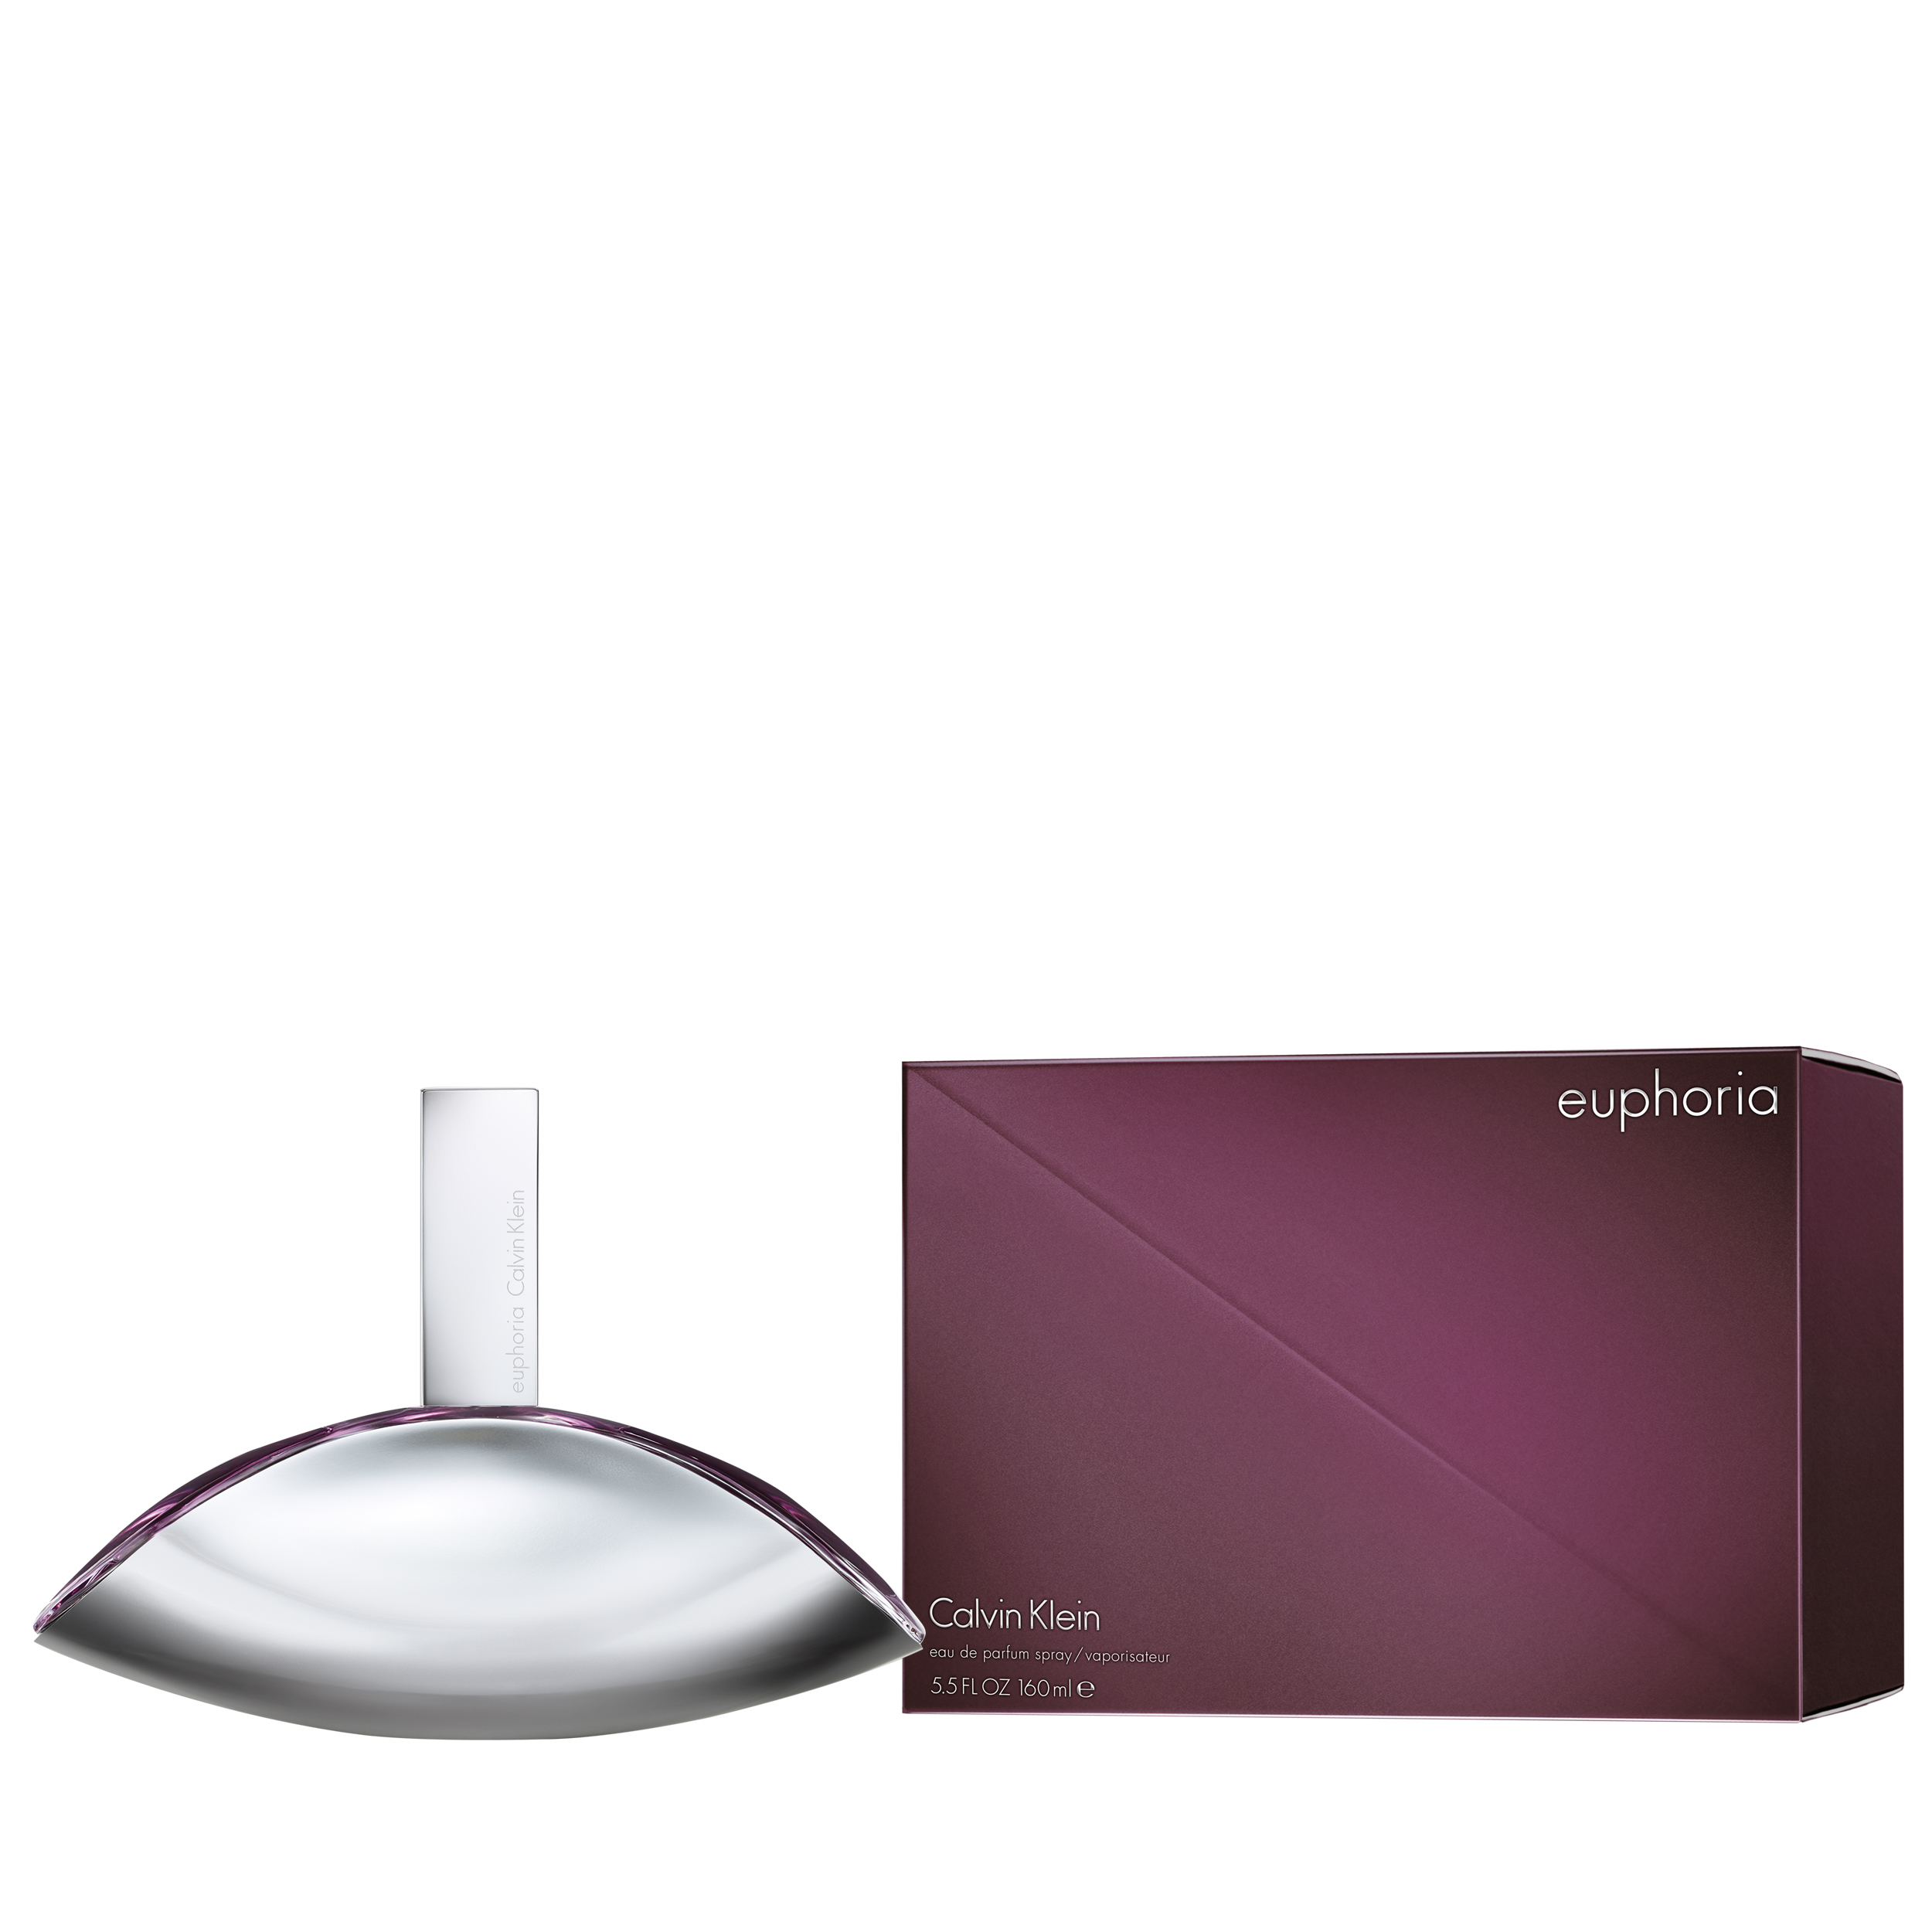 CK EUPHORIA WOMAN EDP 160 ML